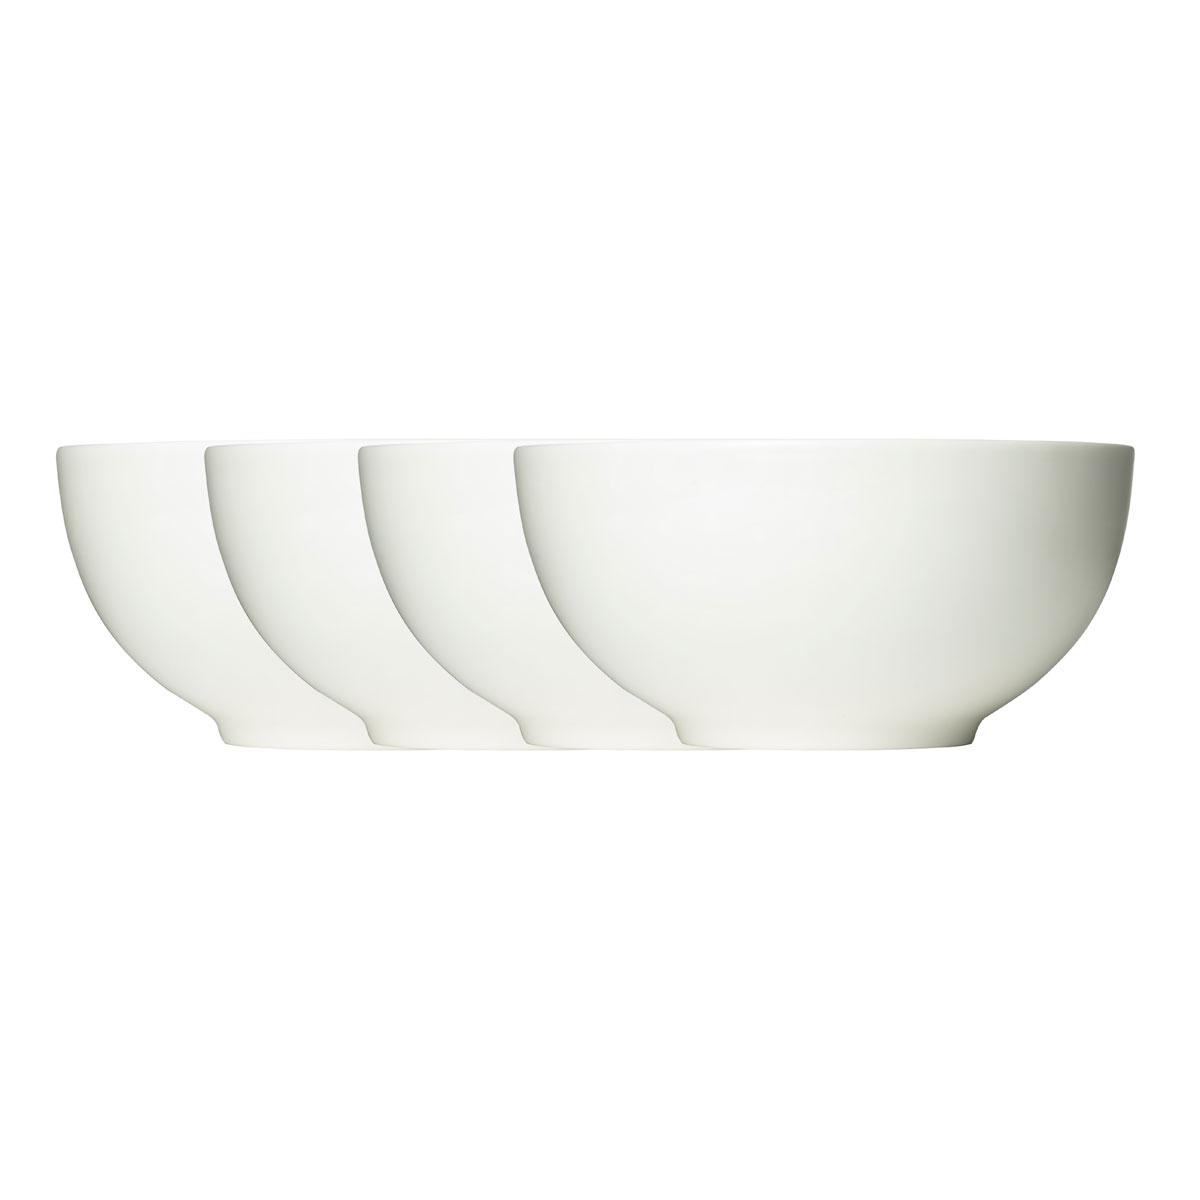 Vera Wang Wedgwood Bone China Perfect White Soup Cereal Bowl Set of Four